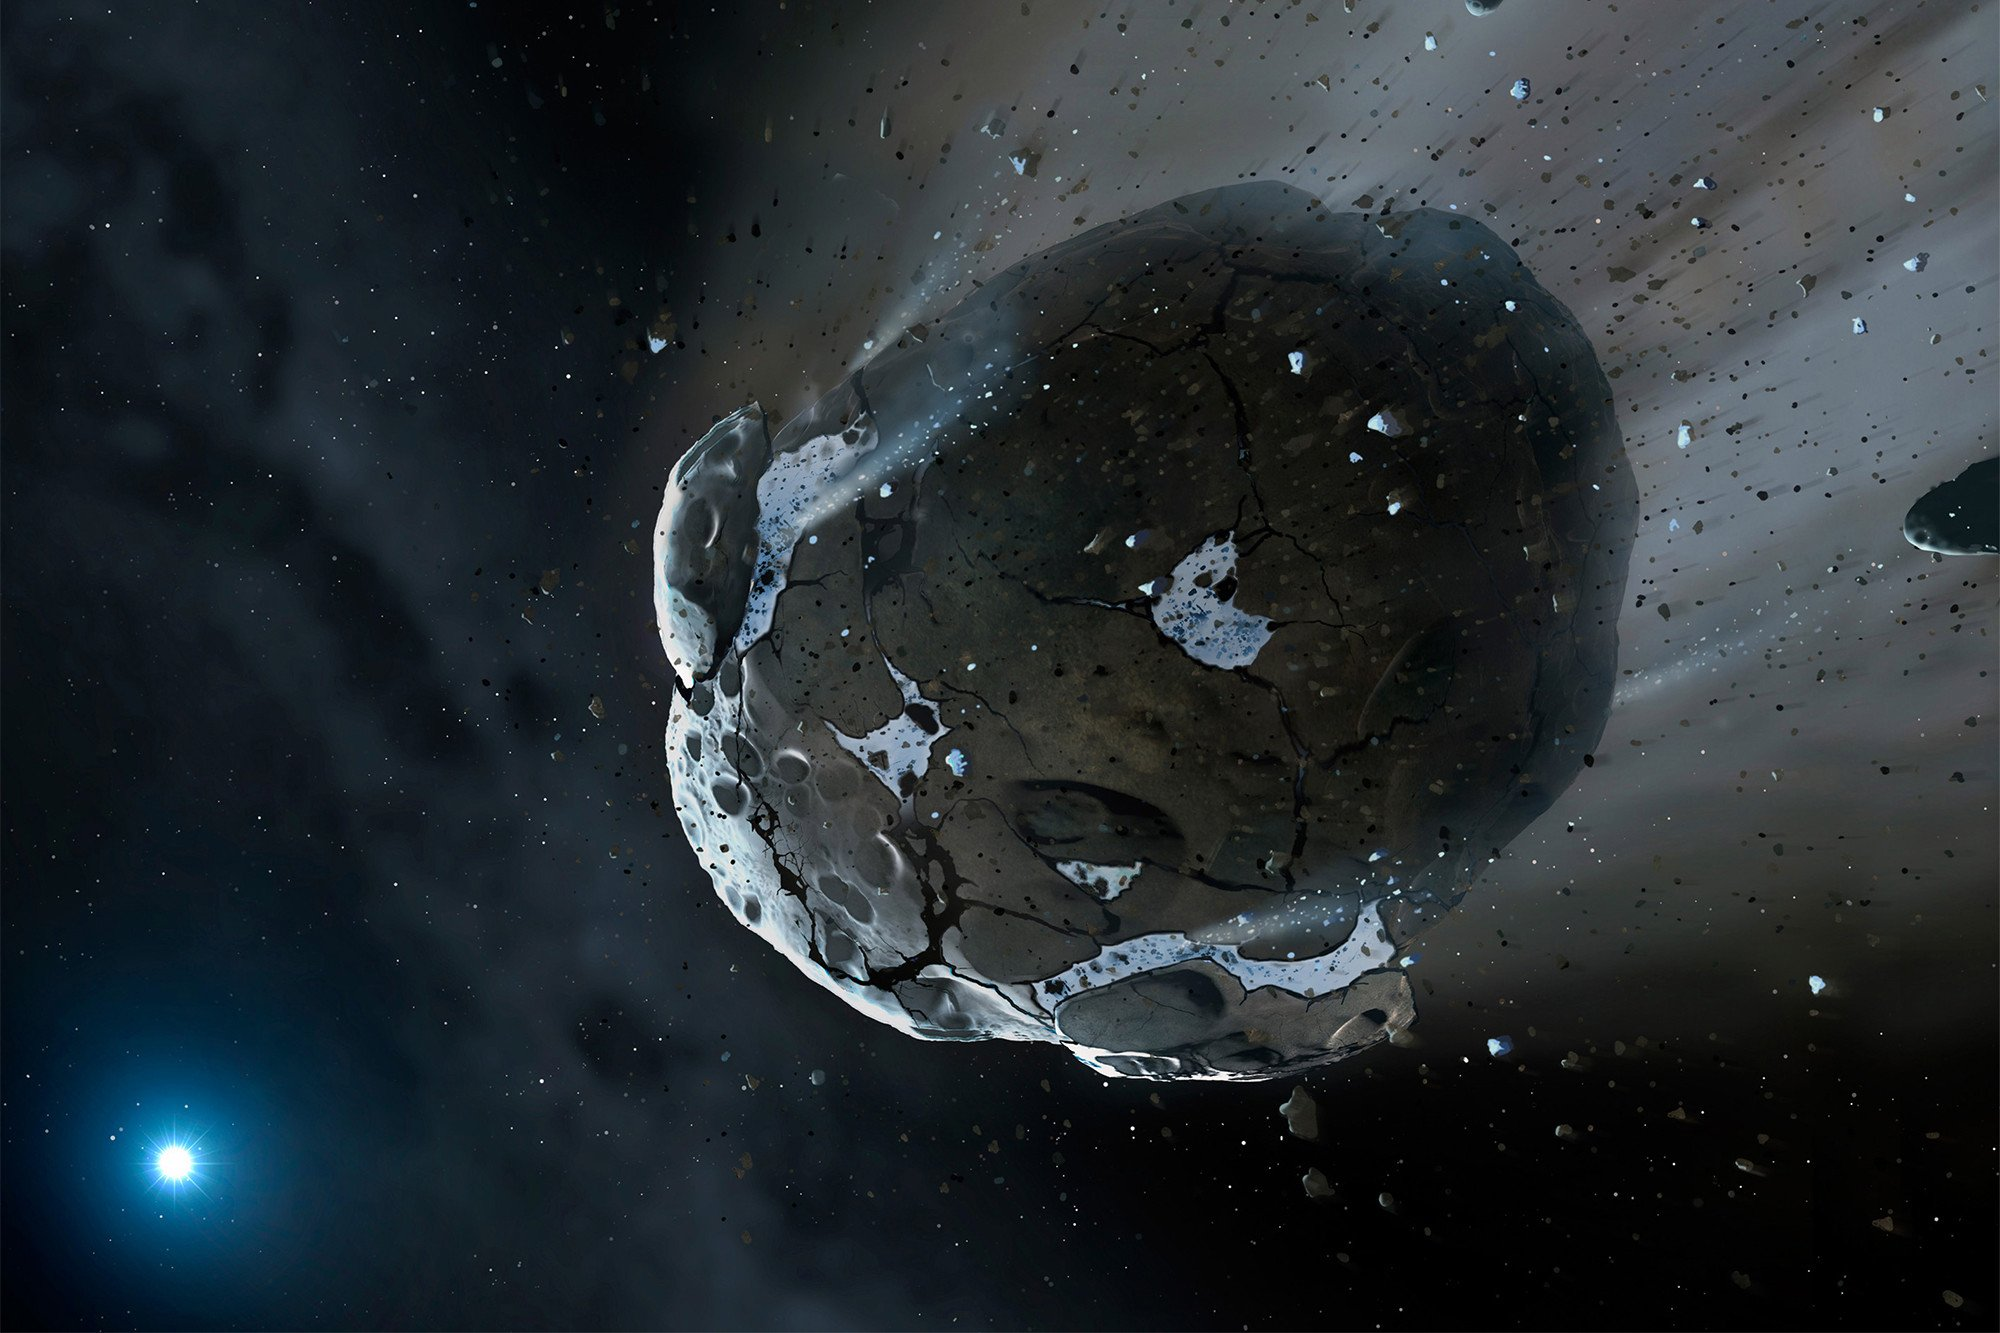 Goldman predicts the world's first trillionaire will mine asteroids